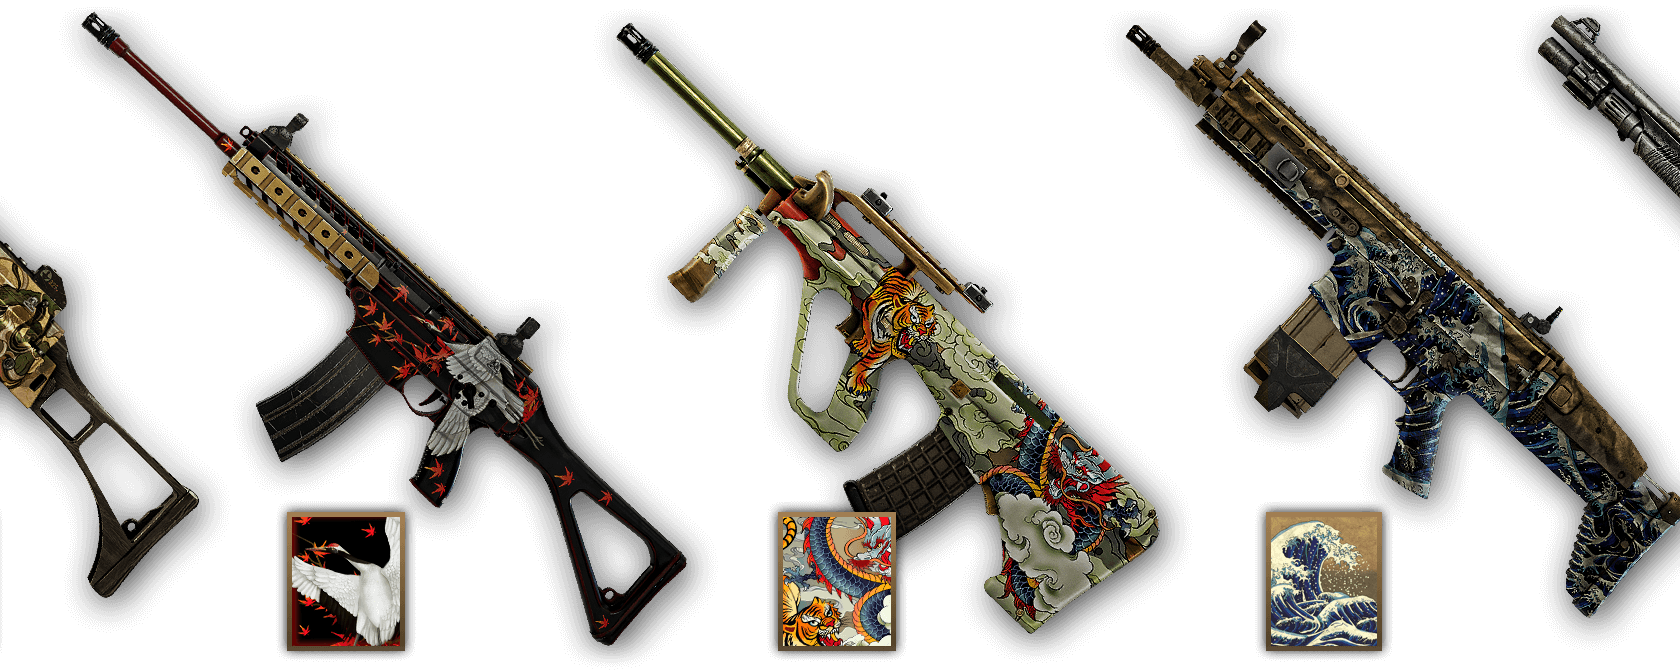 http://static9.cdn.ubi.com/resource/pl-PL/game/rainbow6/siege/R6_red-crow_patches-weapons-skins.png